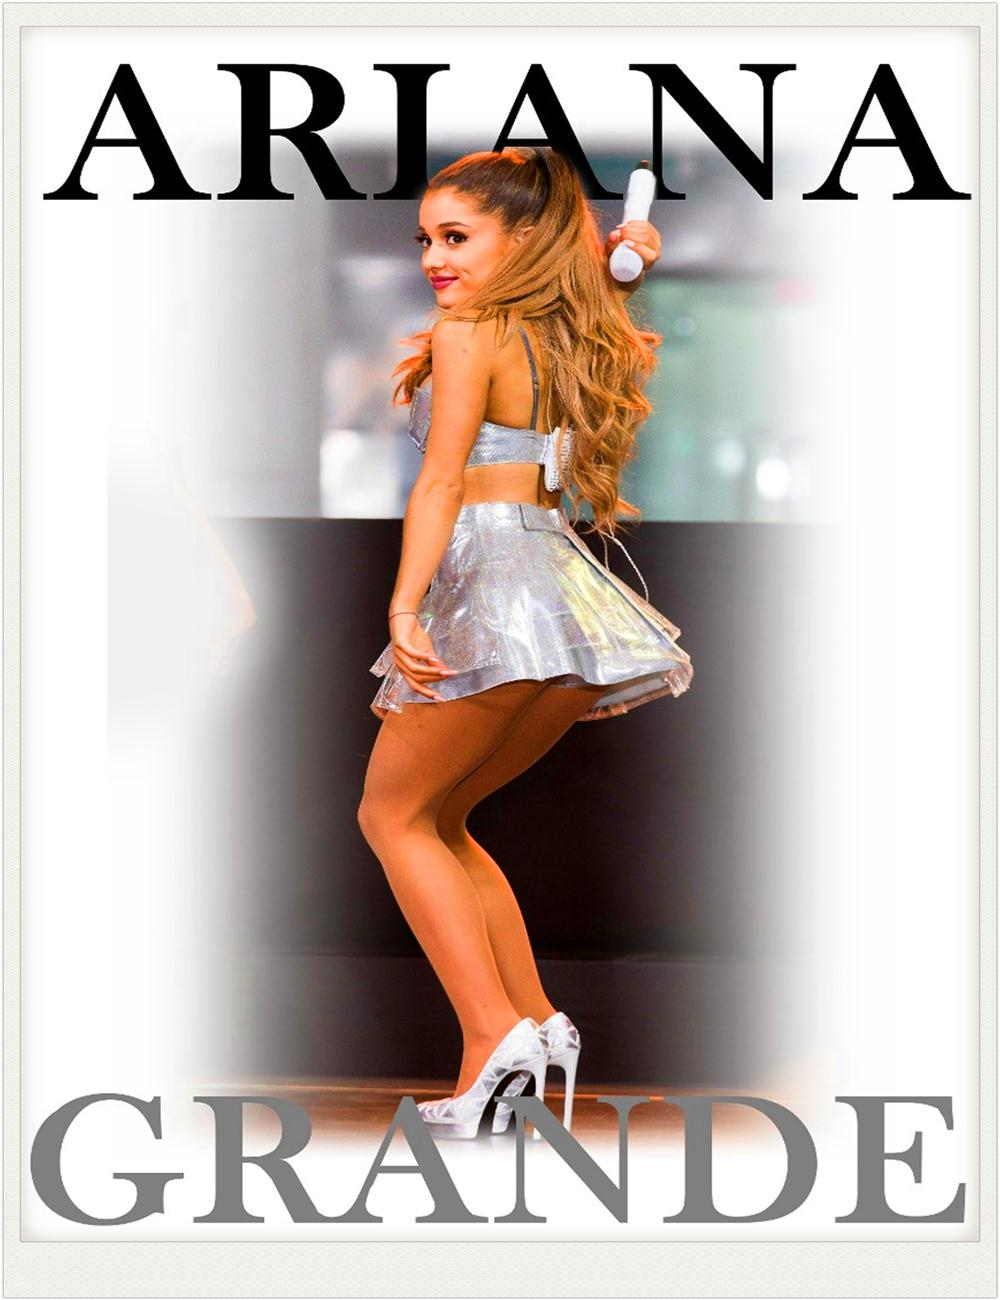 free shipping 2015 custom sexy ass ariana grande vintage posters and